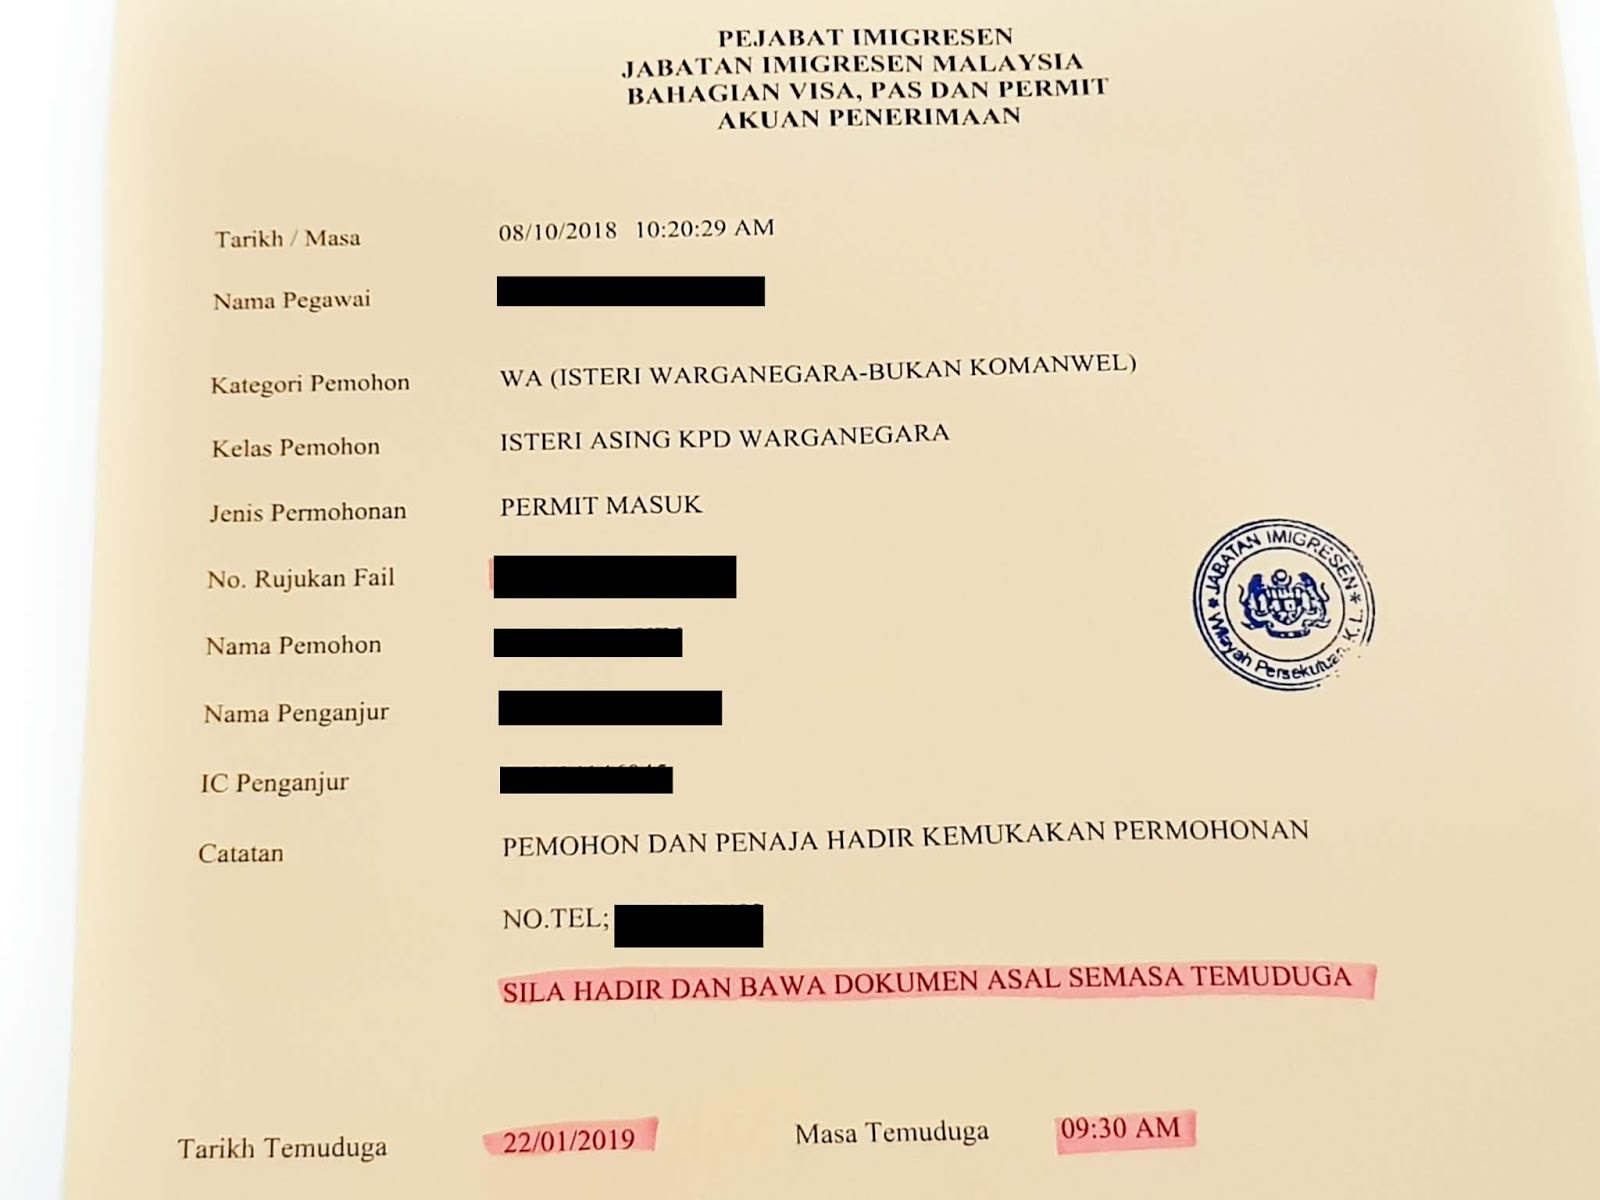 Marrying A Malaysian Immigration Interview For Permanent Residency Pr In Malaysia Just An Ordinary Girl